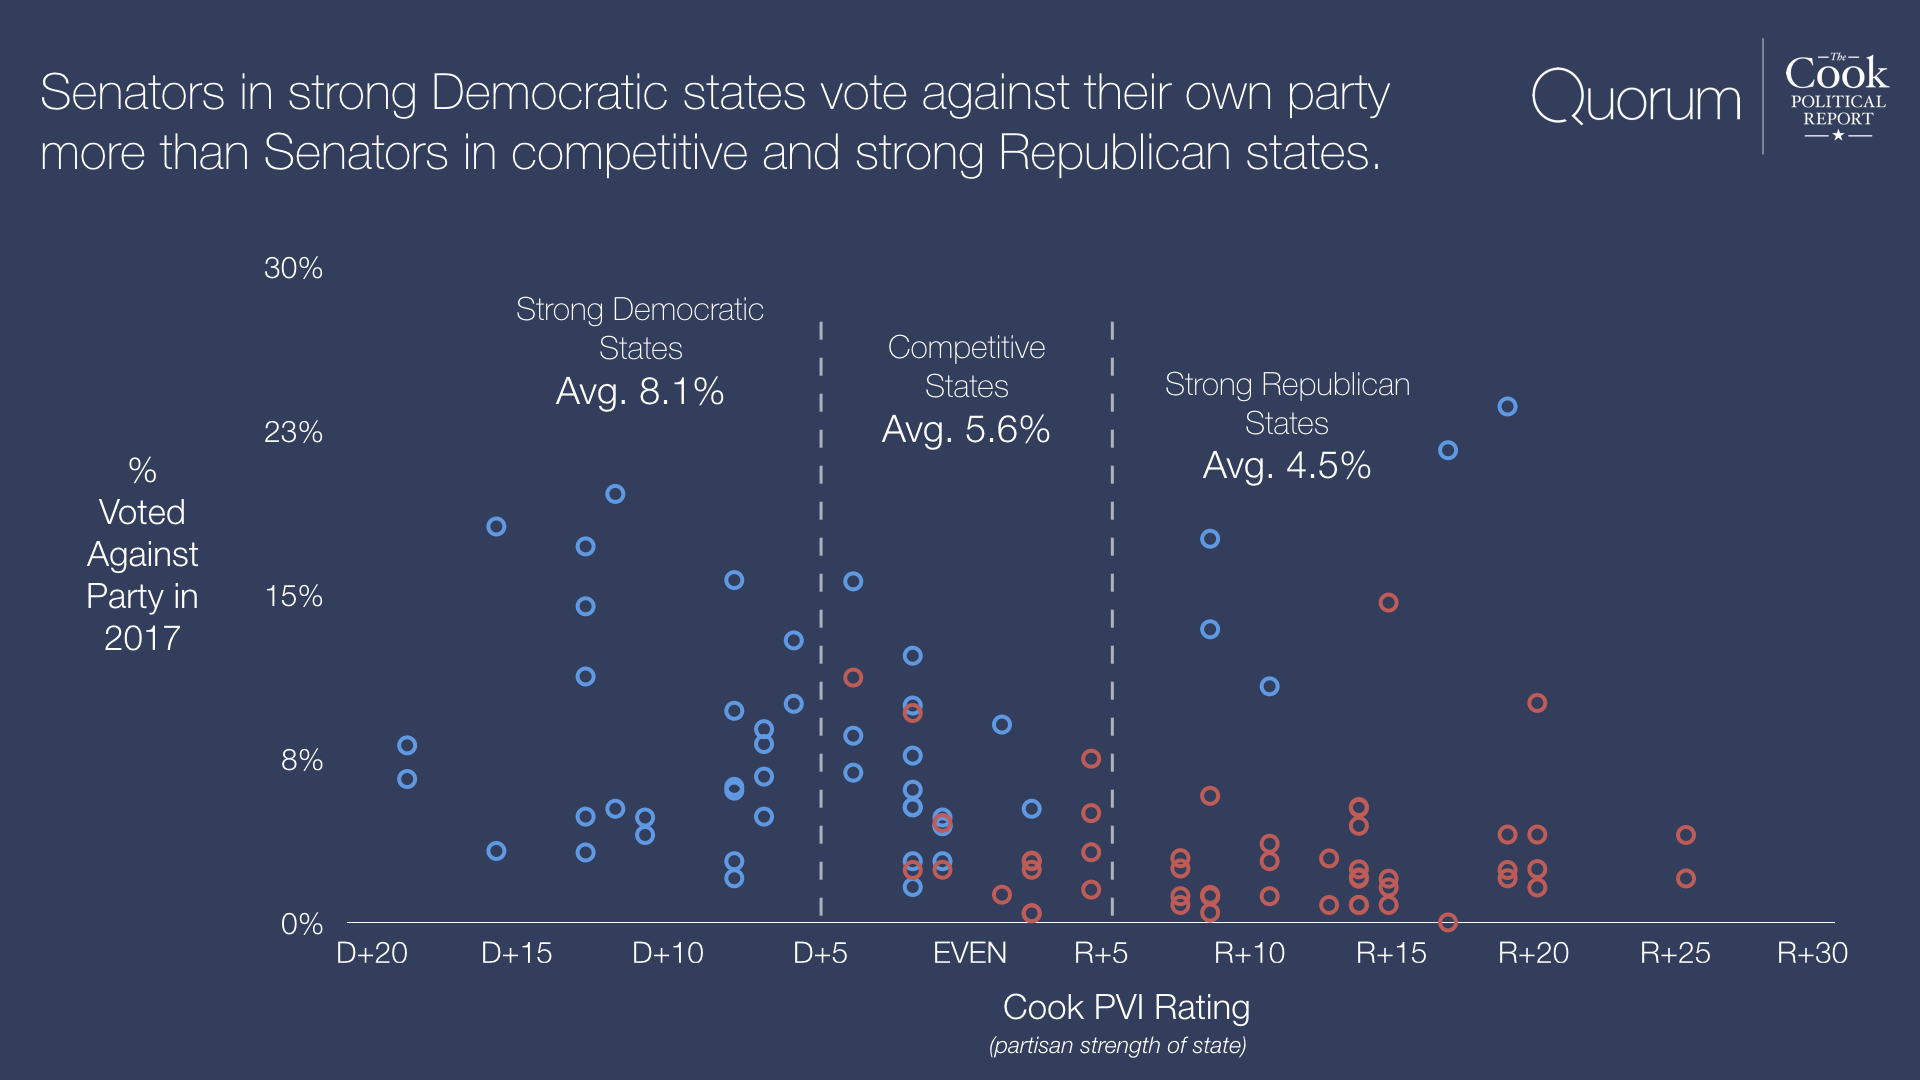 Senators in strong Democratic states vote against their own party more than Senators in competitive and strong Republican states.